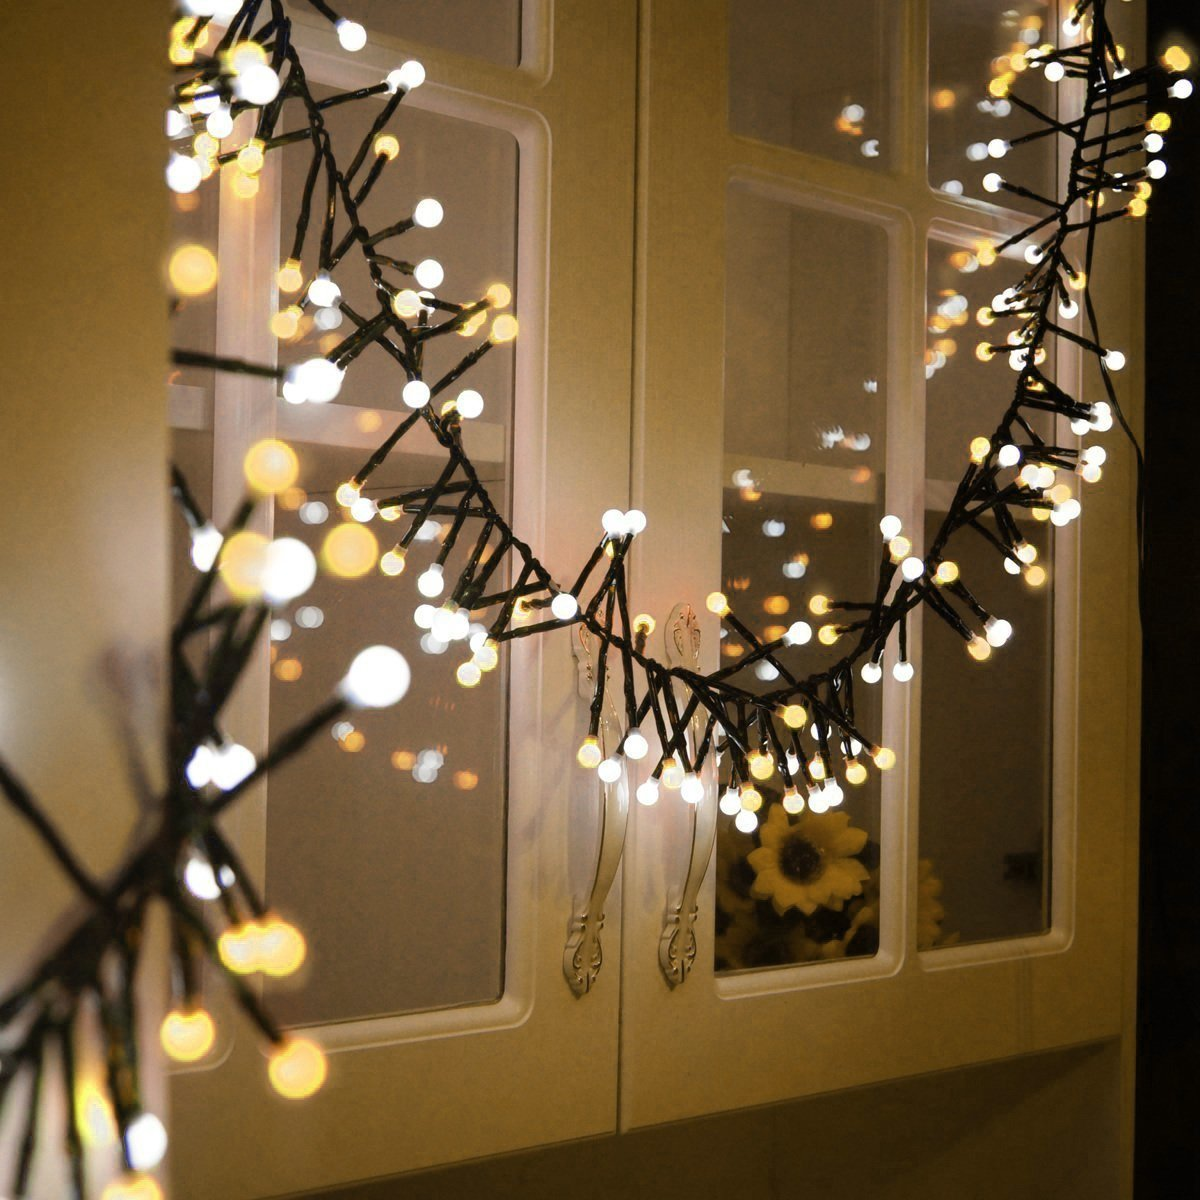 Quntis Christmas Fairy Lights Pretty LED Decorations String Lights Waterproof Starry Curtain Lights for Room Bedroom Outdoor Garden Window Party Home Indoor Backyard and Patio(Warm White)